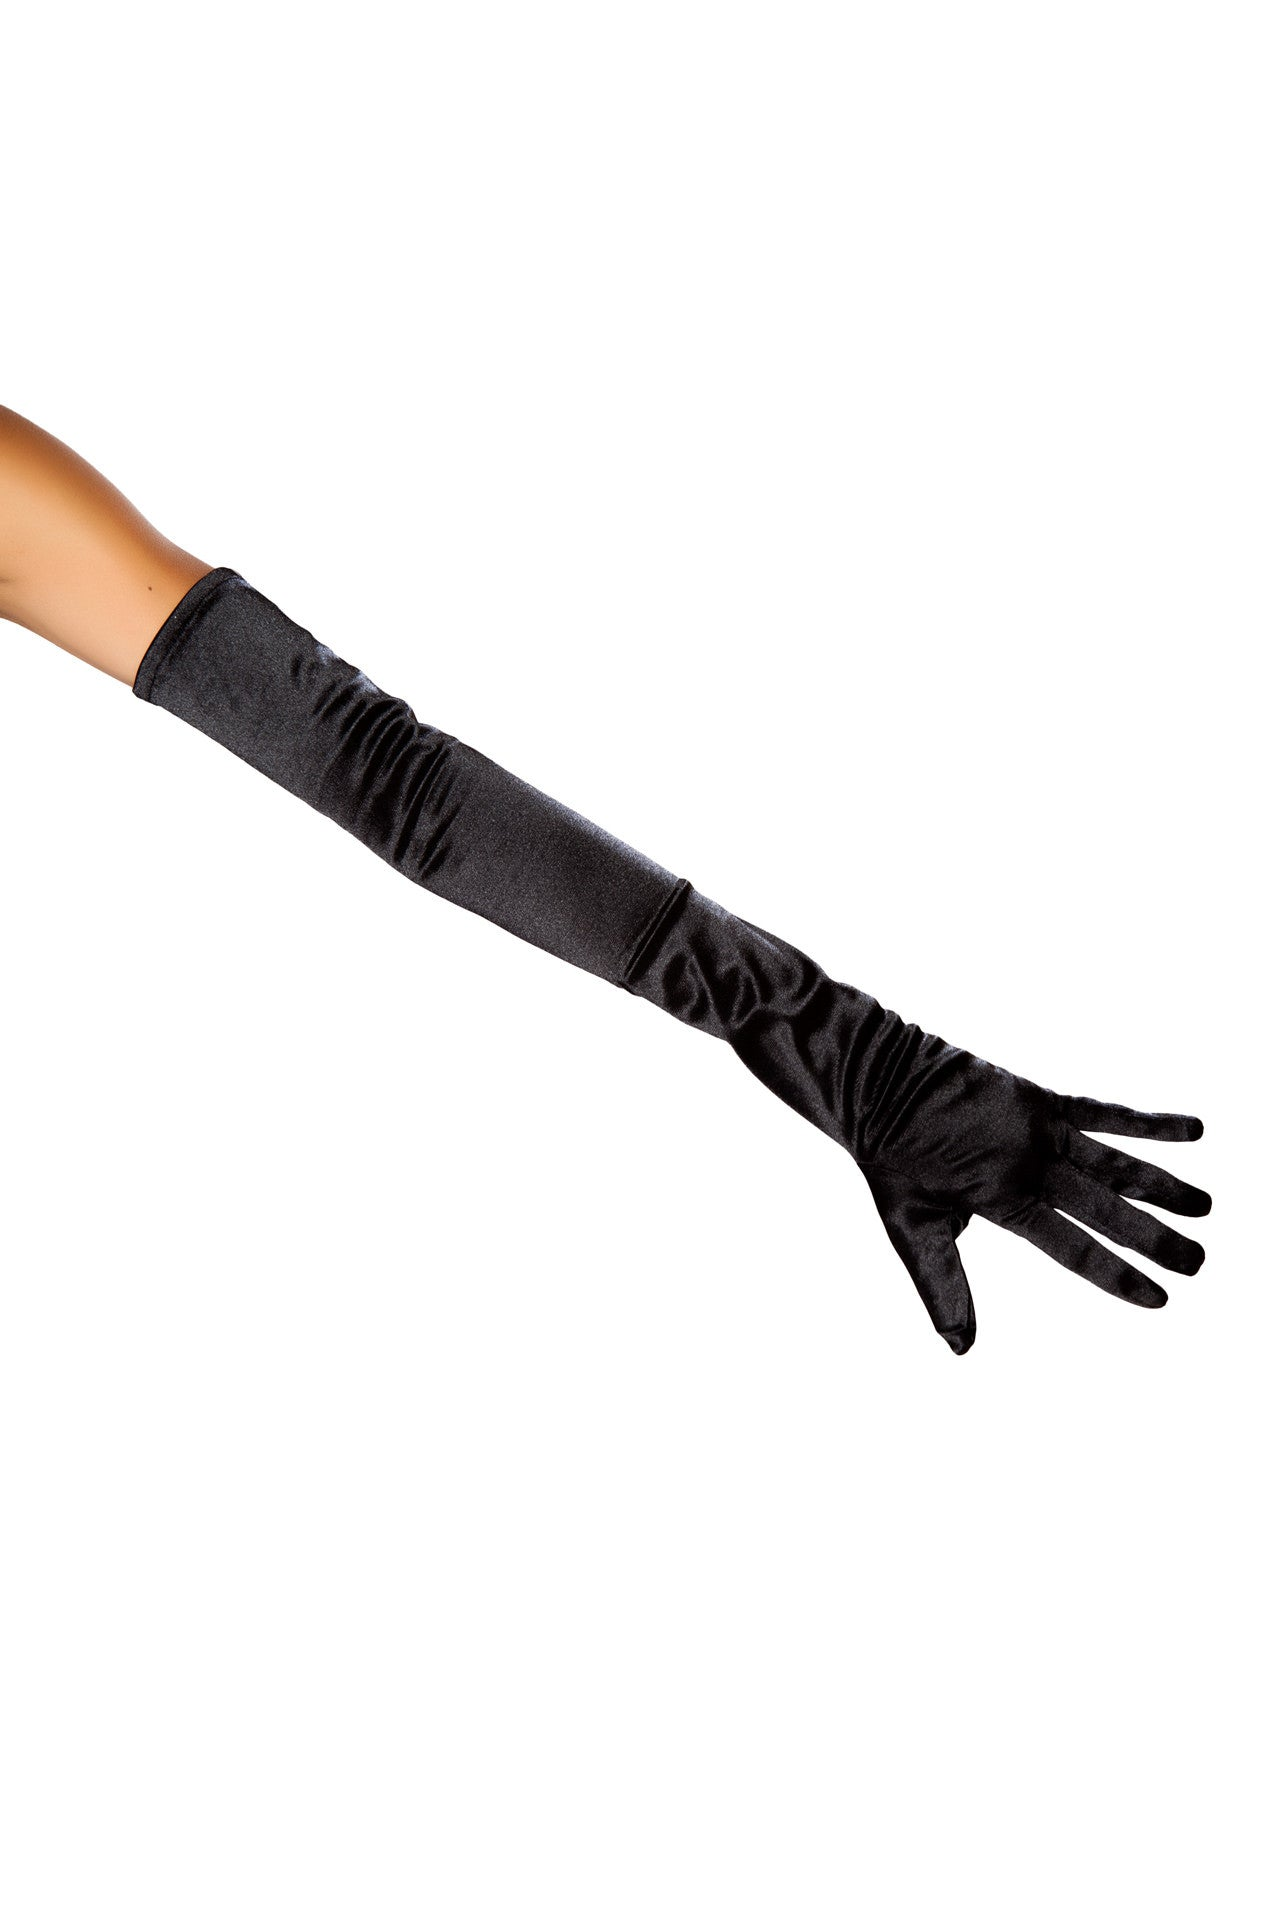 10104 - Stretch Satin Gloves ${description} | Roma Costume and Roma Confidential wholesale manufacturer of Women Apparel bulk world wide wholesale and world wide drop ship services for Adult Halloween Costumes, Sexy and Elegant Lingerie, Rave Clothing, Club wear, and Christmas Costumes. Accessories, Roma Costume, Inc., Roma Costume, Roma Confidential, Wholesale clothing, drop ship, drop ship service, Wholesale Lingerie, Wholesale Adult Halloween Costumes, Rave Clothing, EDM Clothing, Festival Wear, Christmas Costumes, Clubwear, Club wear.